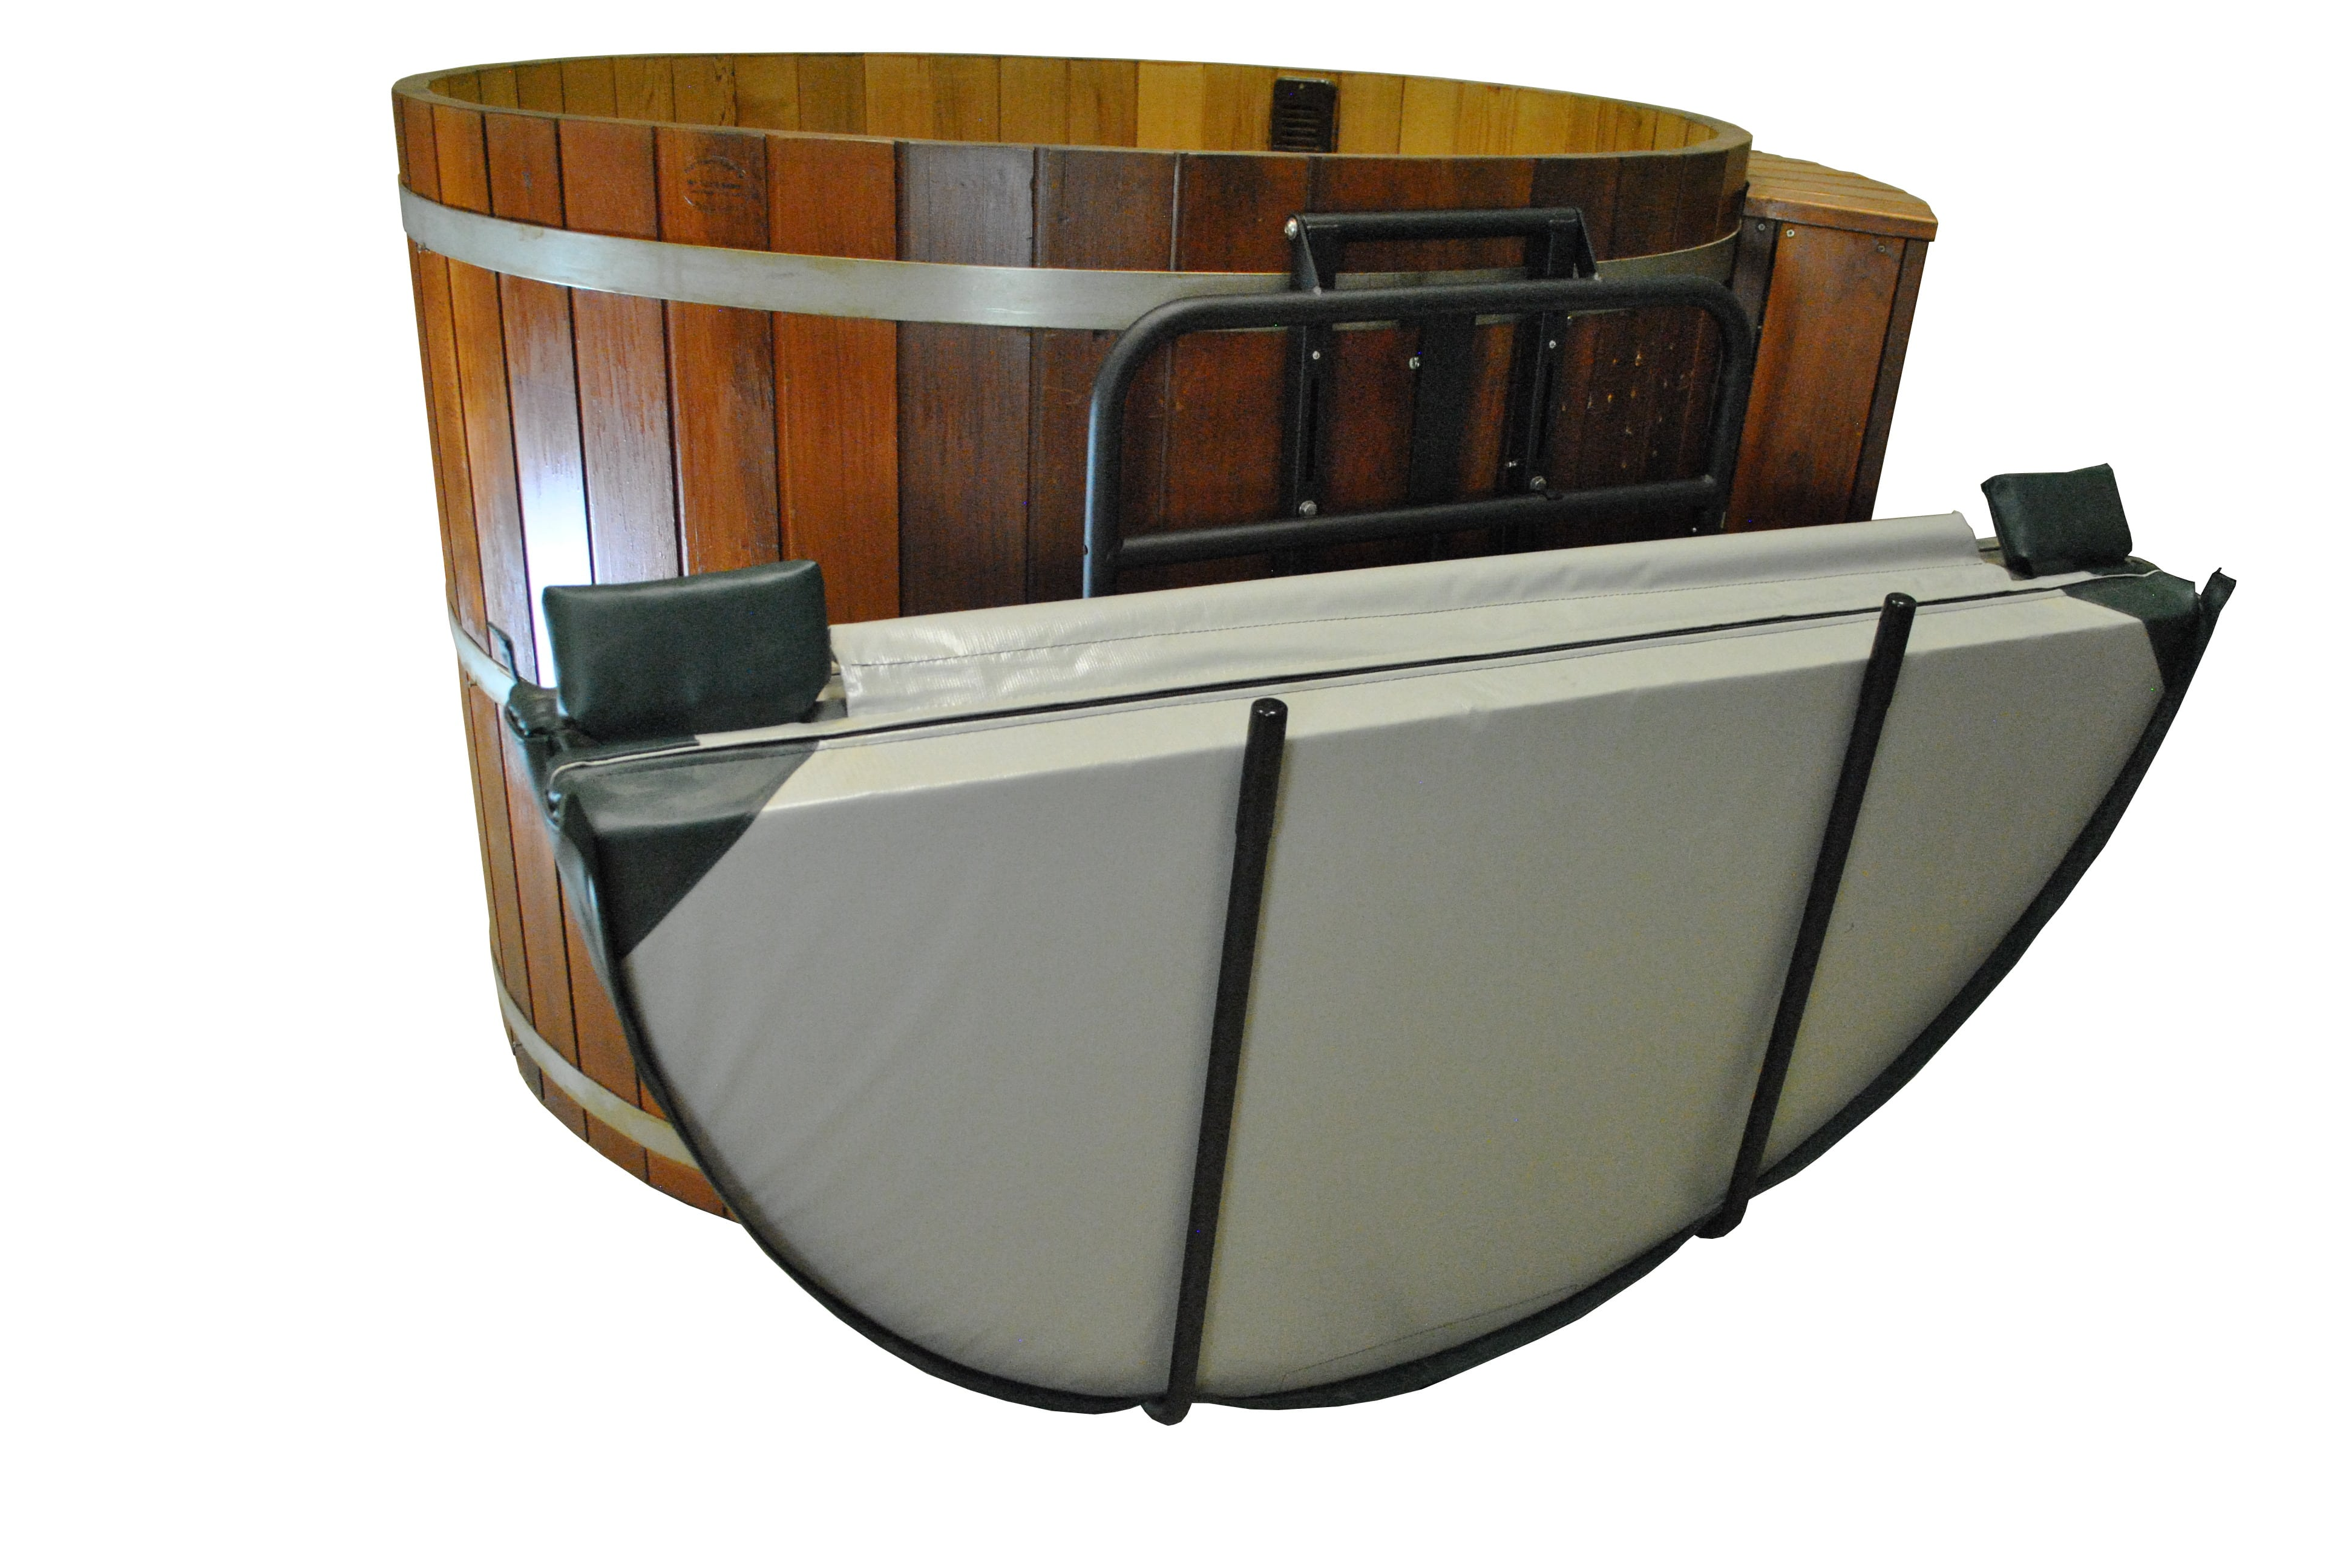 Hot Tub Cover Lifter - for wood tubs and swim spas [C-675] - $236.16 ...